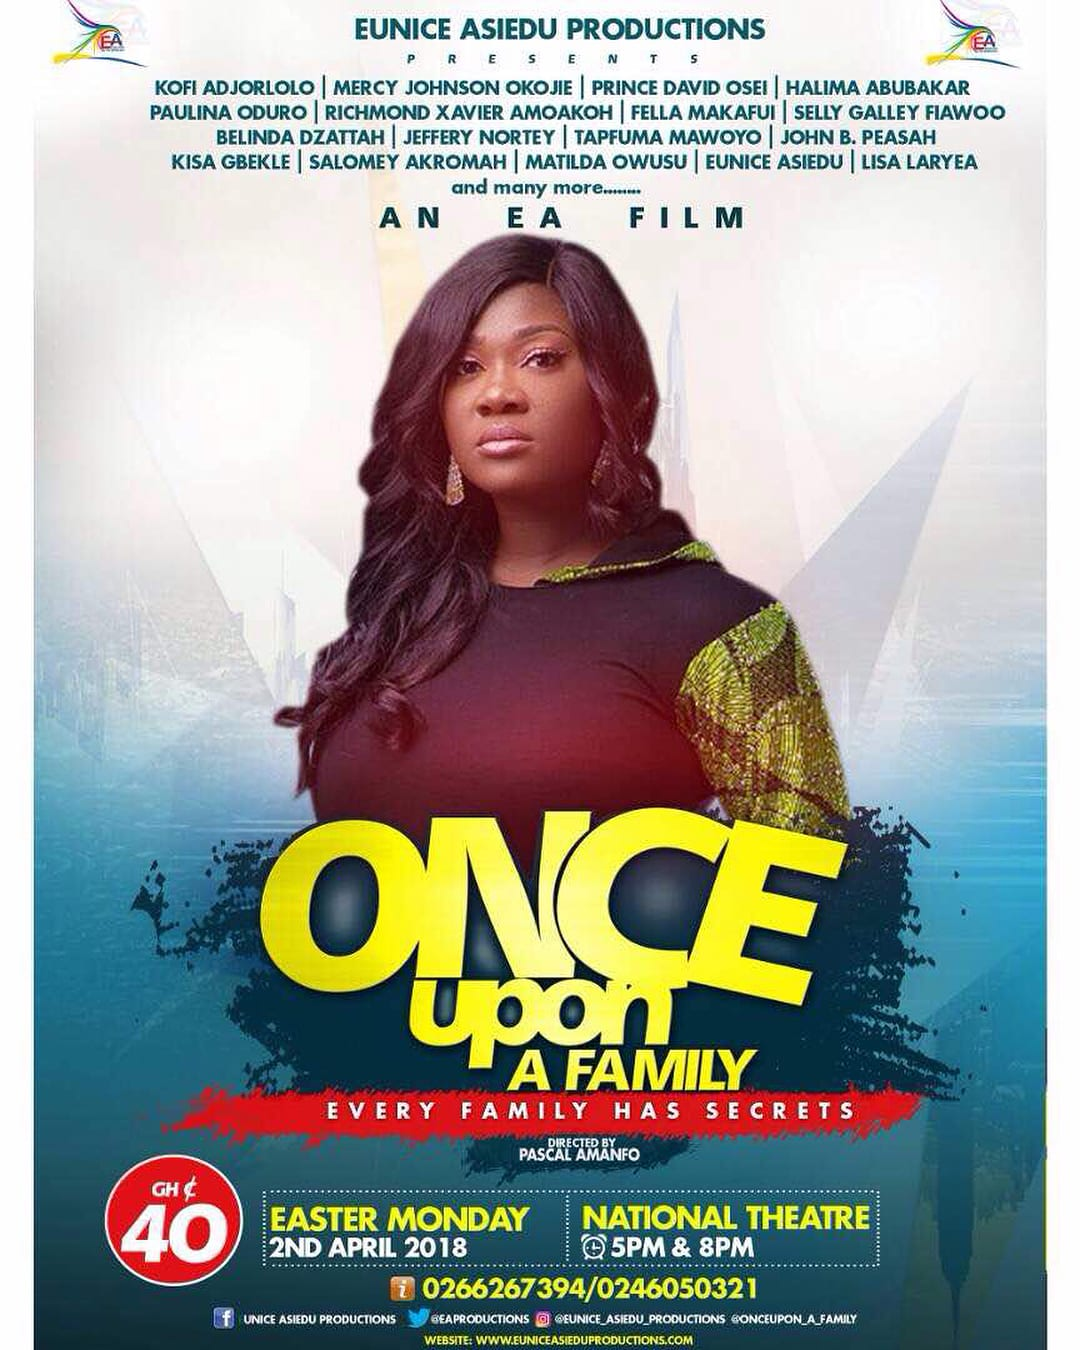 Mercy Johnson Okojie in Ghana for movie premiere on Easter Monday